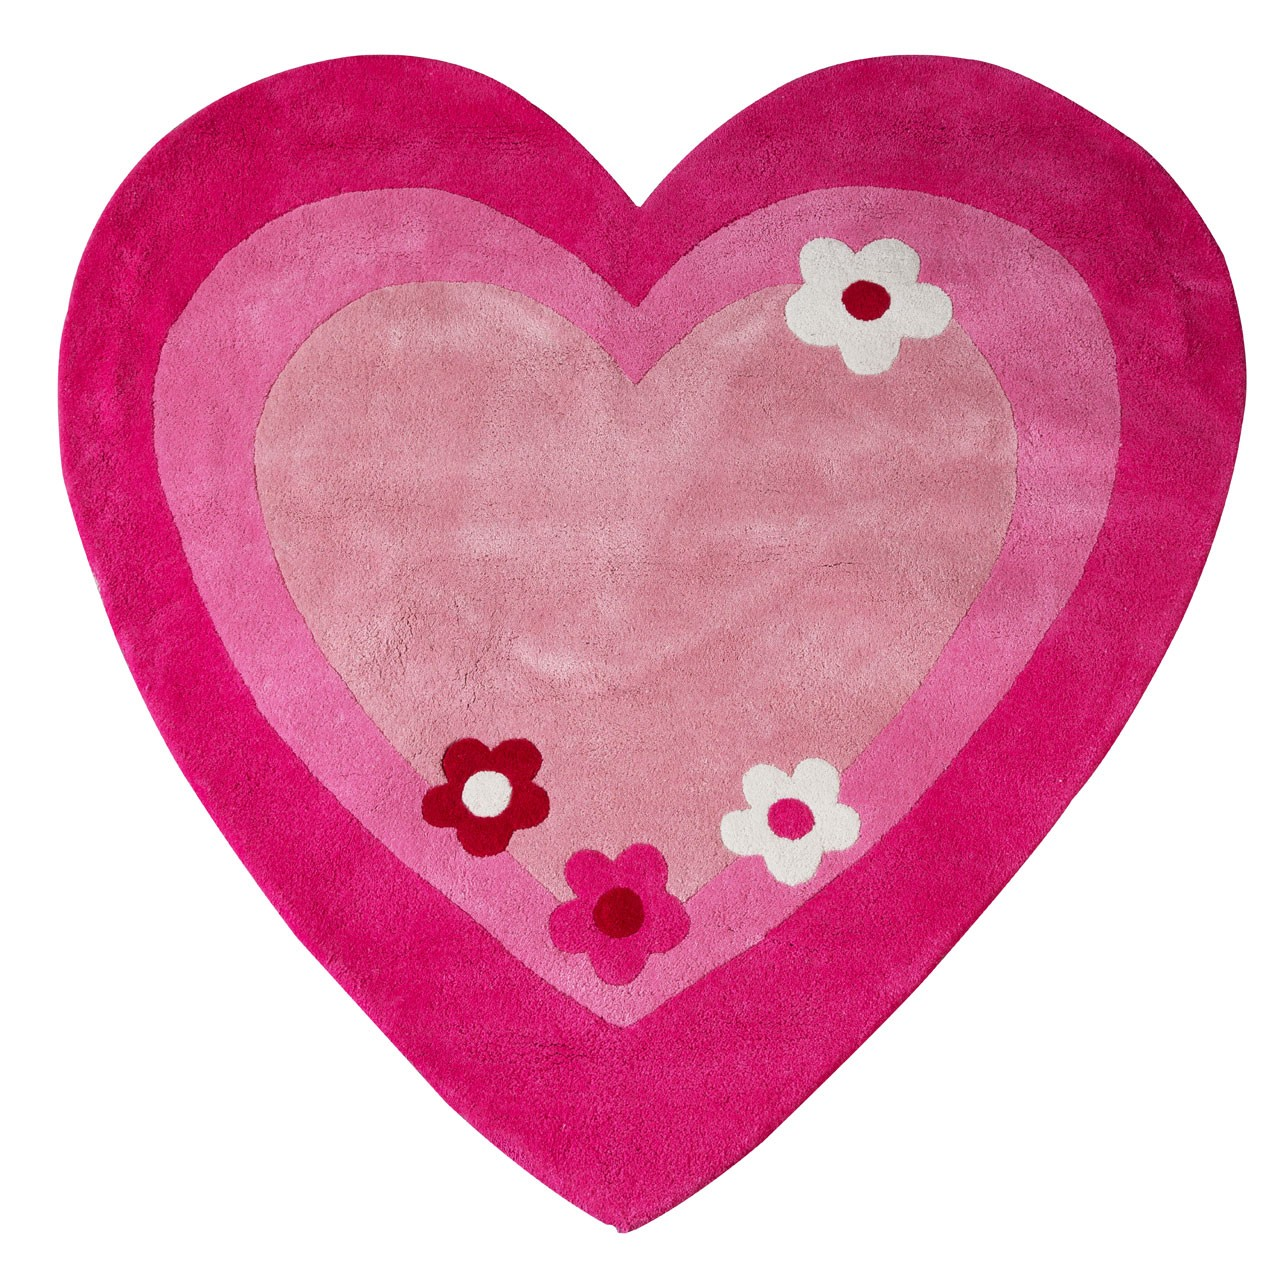 Prime Furnishing Kids Love Heart Rug, Cotton - Pink